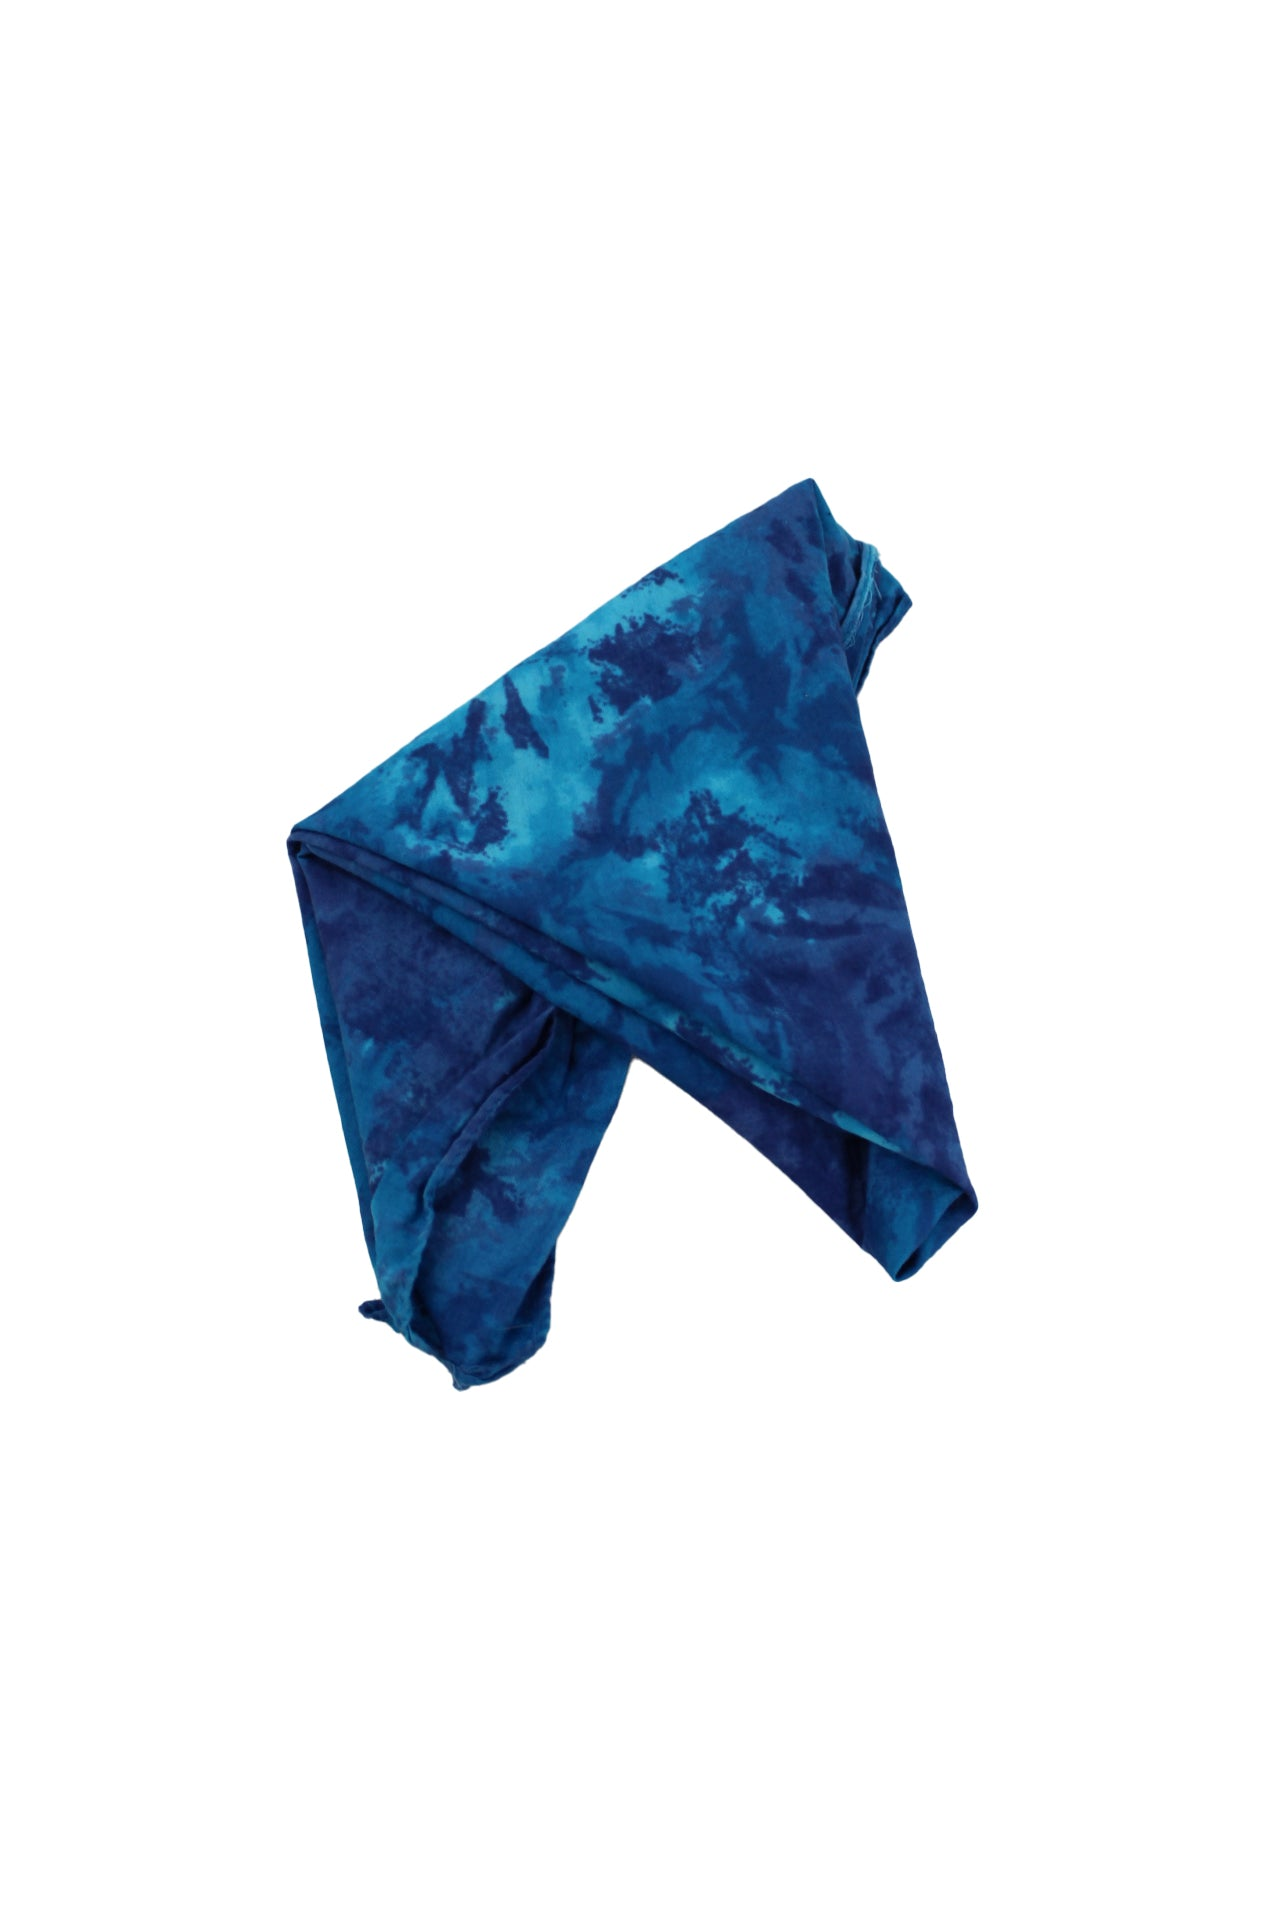 unlabeled multi blue cotton bandana. featured tie dye pattern throughout.